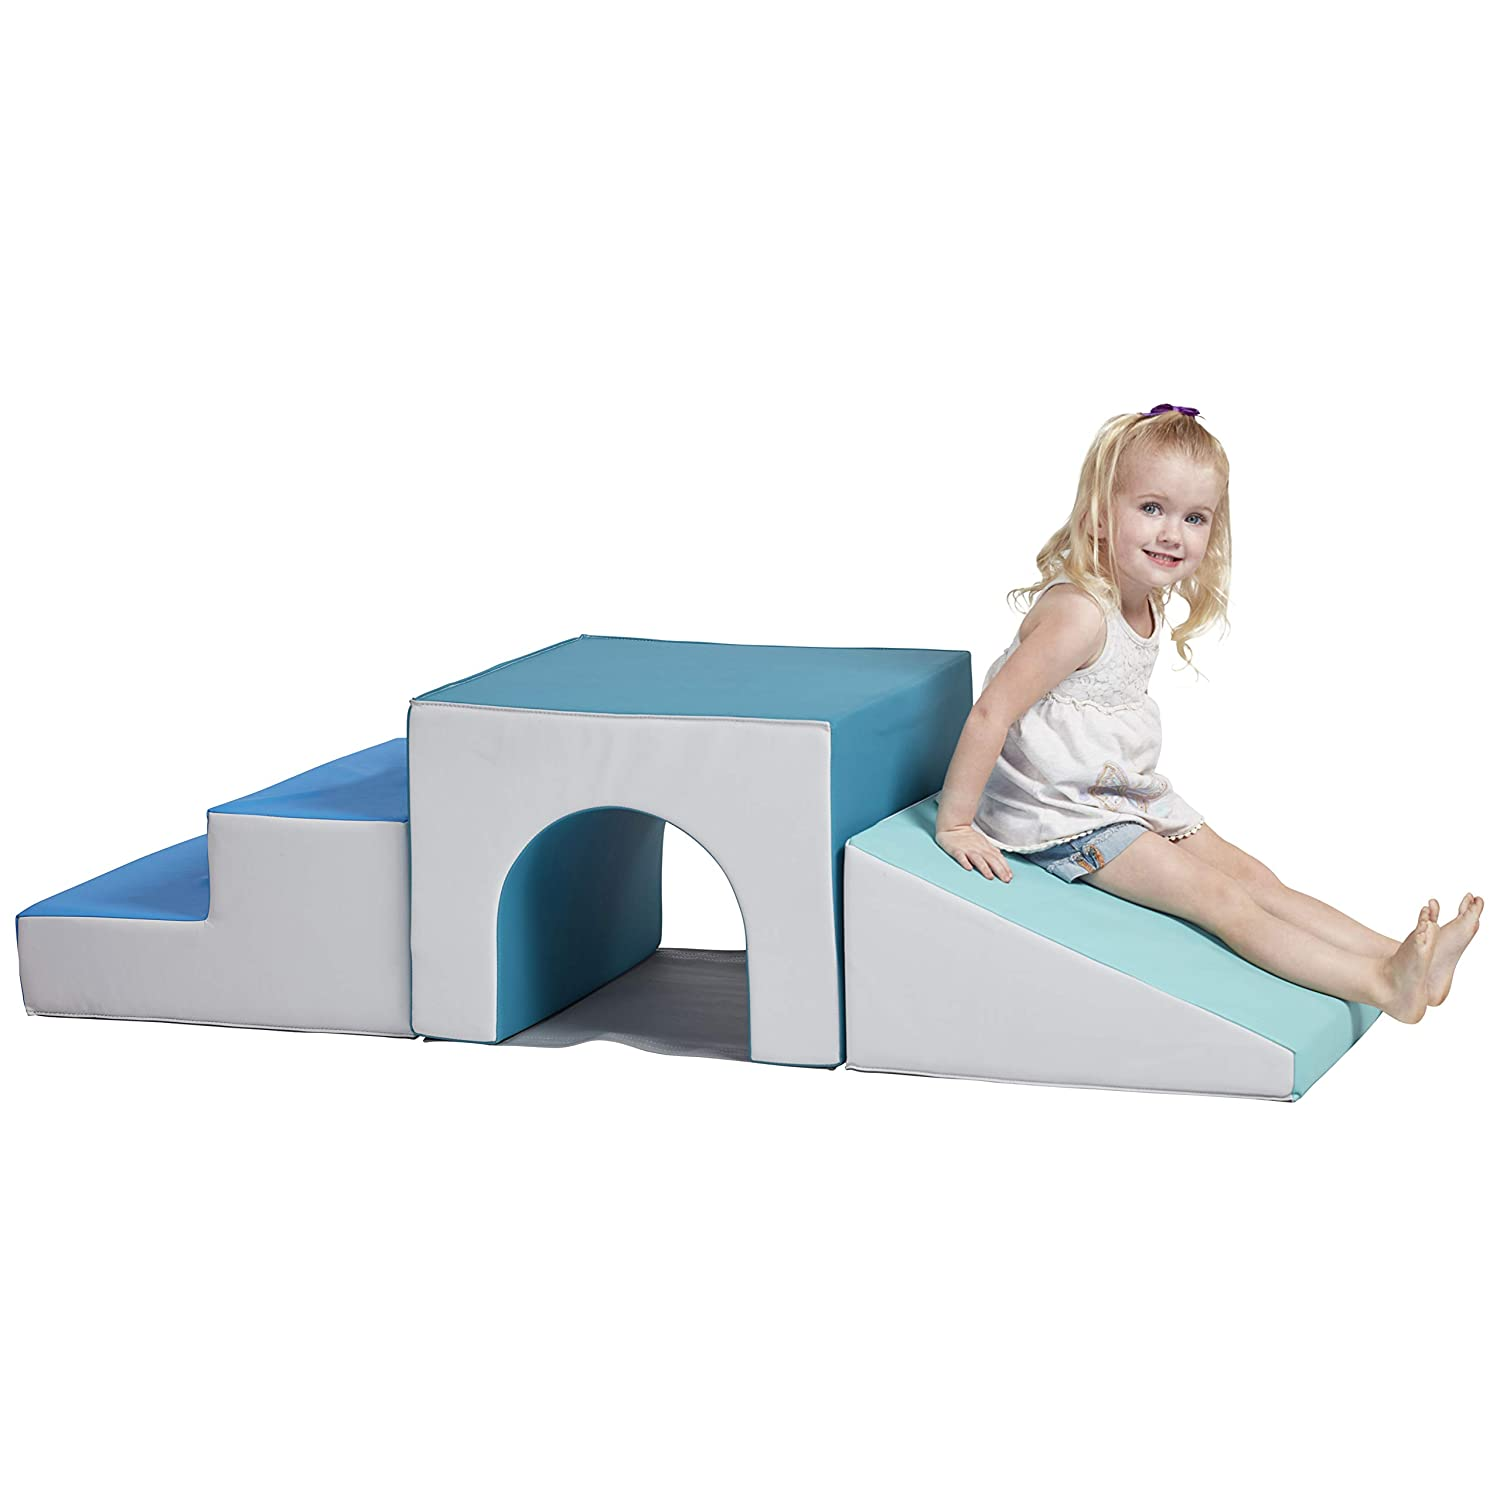 ECR4Kids SoftZone Single-Tunnel Foam Climber, Freestanding Indoor Active Play Structure for Toddlers and Kids, Safe Soft Foam Play Set, Easy to Assemble, Contemporary